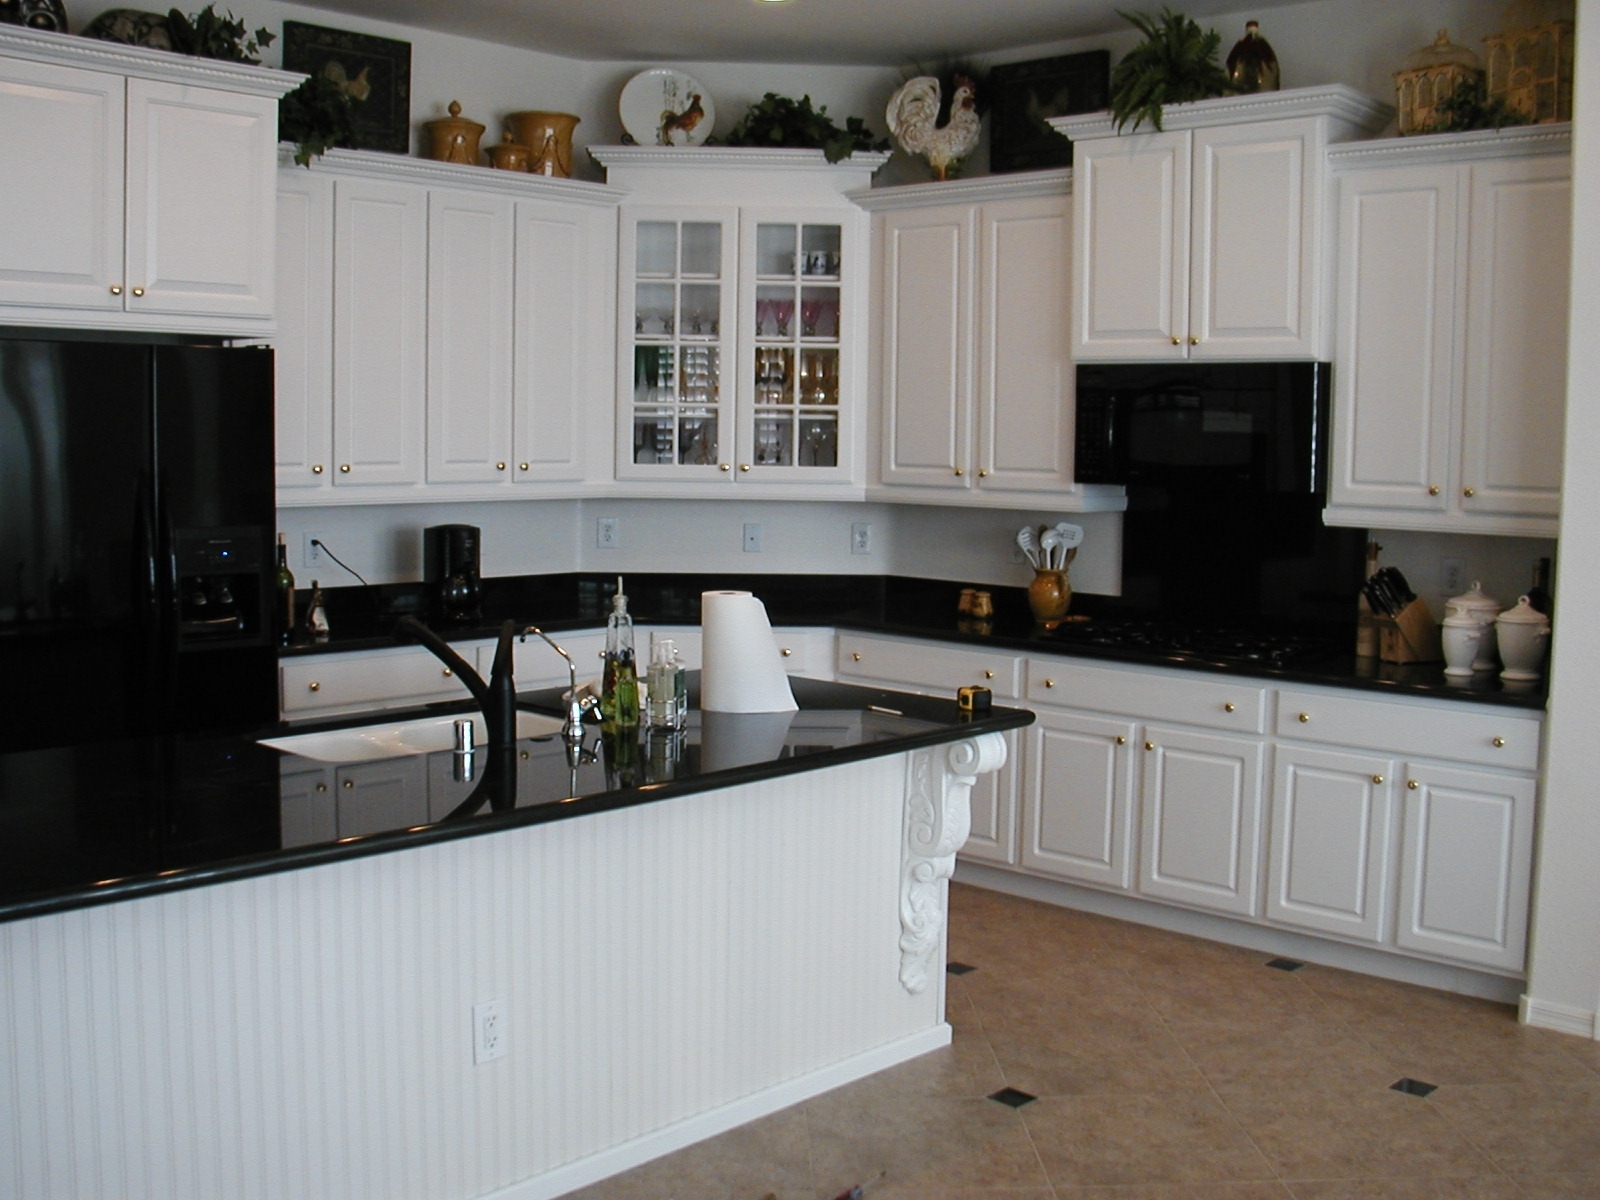 Gothic Black Side By Side Refrigerator And Granite Countertops Plus White  Kitchen Set Also Corner Glass